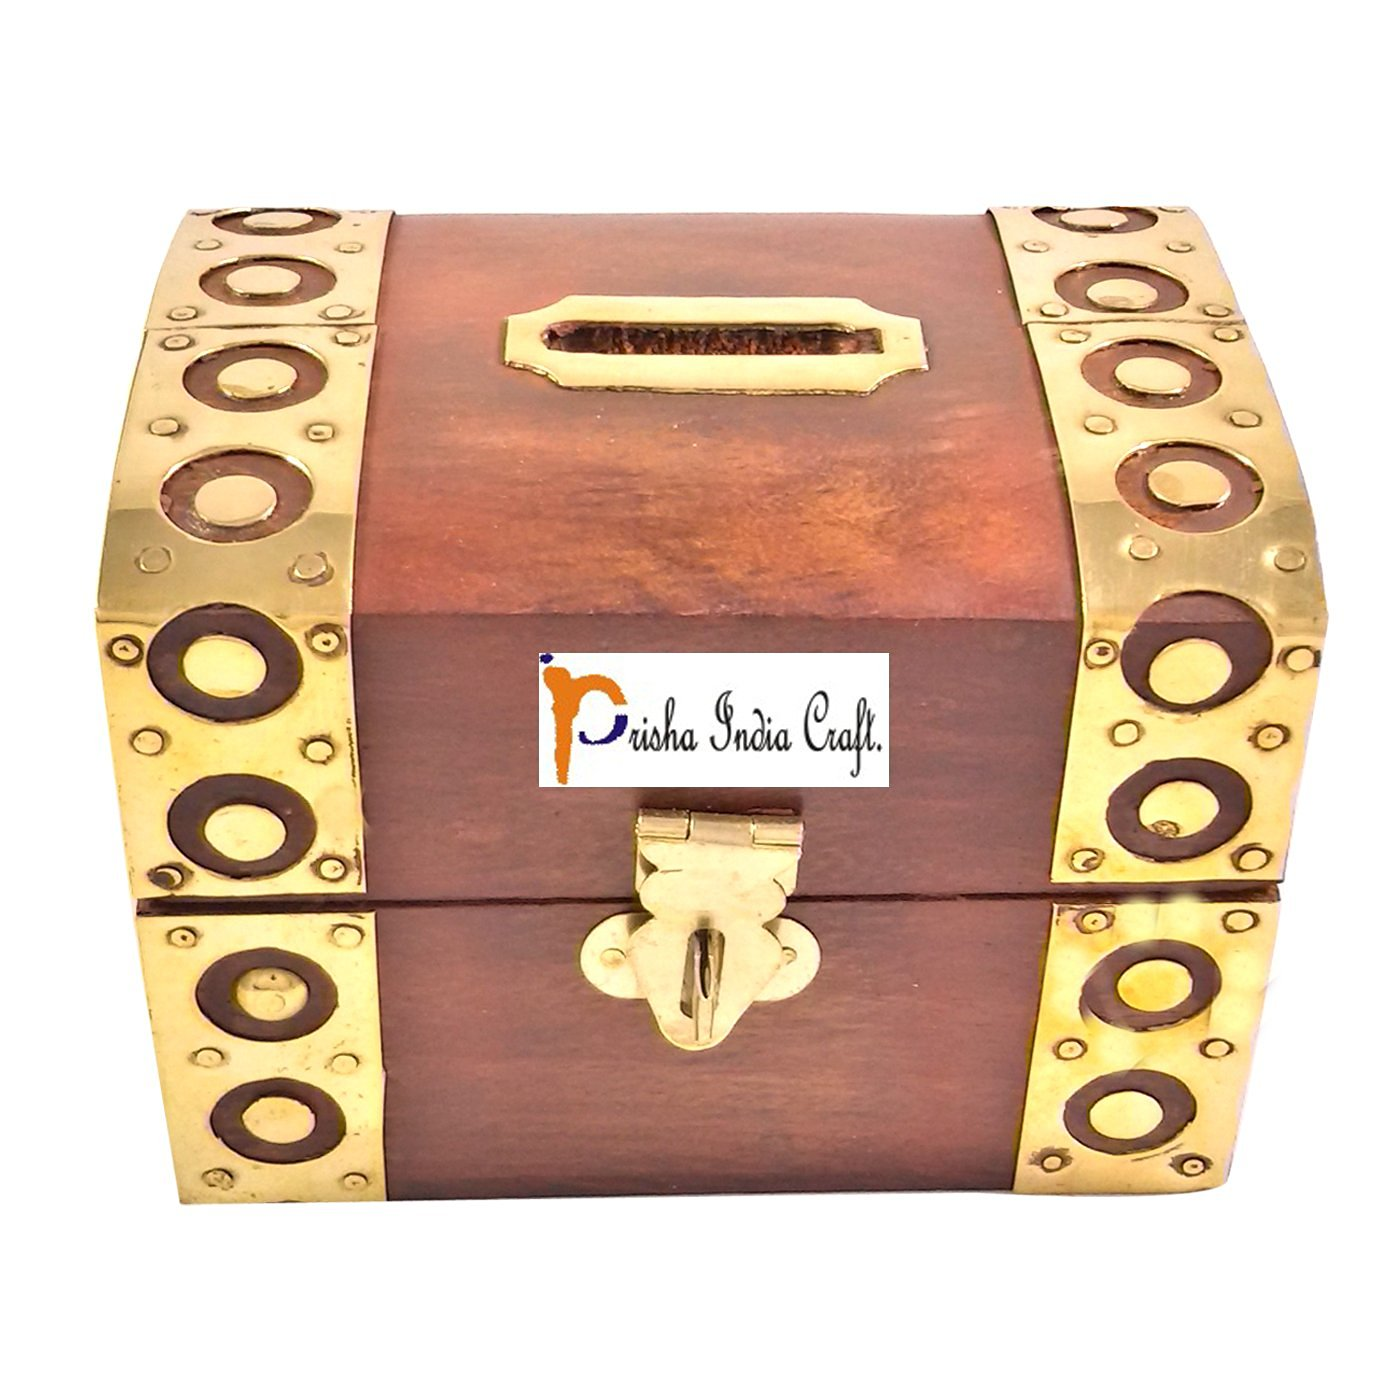 Prisha India Craft Handcrafted Wooden Money Box Safe Piggy Bank for Girls and Boys wooden money bank CHRISTMAS GIFT ITEM 3 X 3 X 4 Inch, Square Style